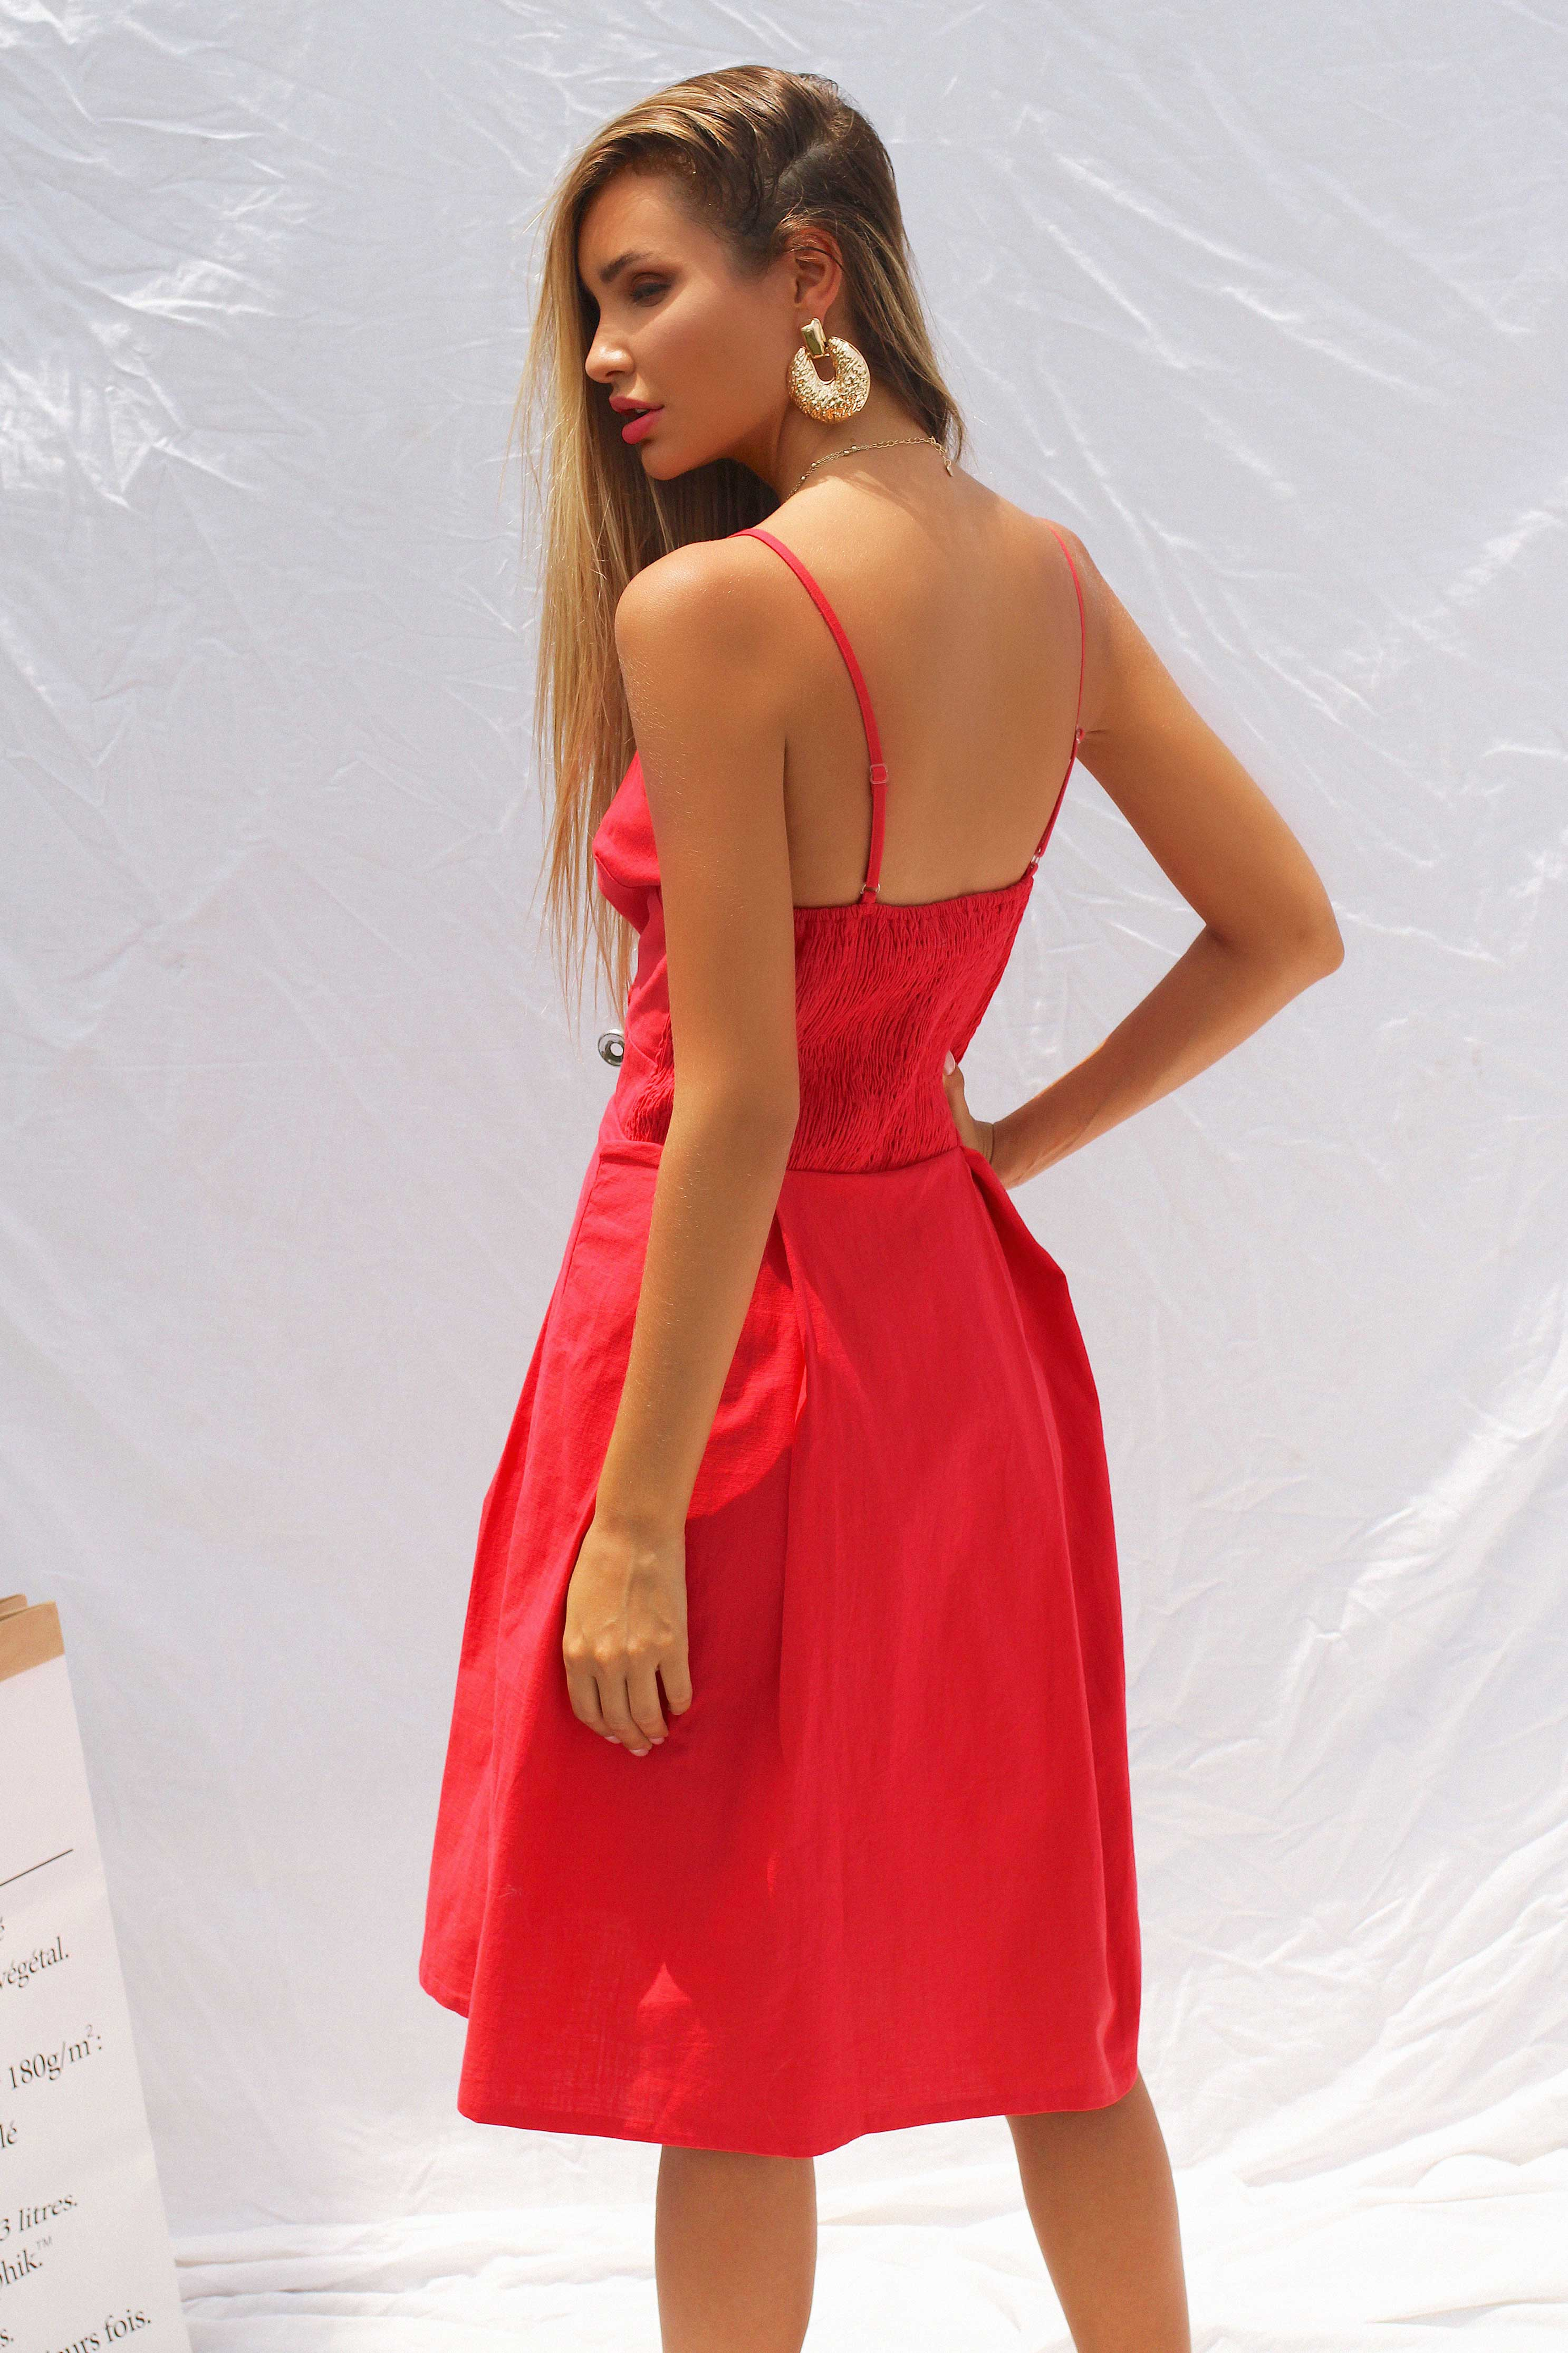 CELOSIA DRESS | Women's Online Shopping | CHICLEFRIQUE  (2102021292121)